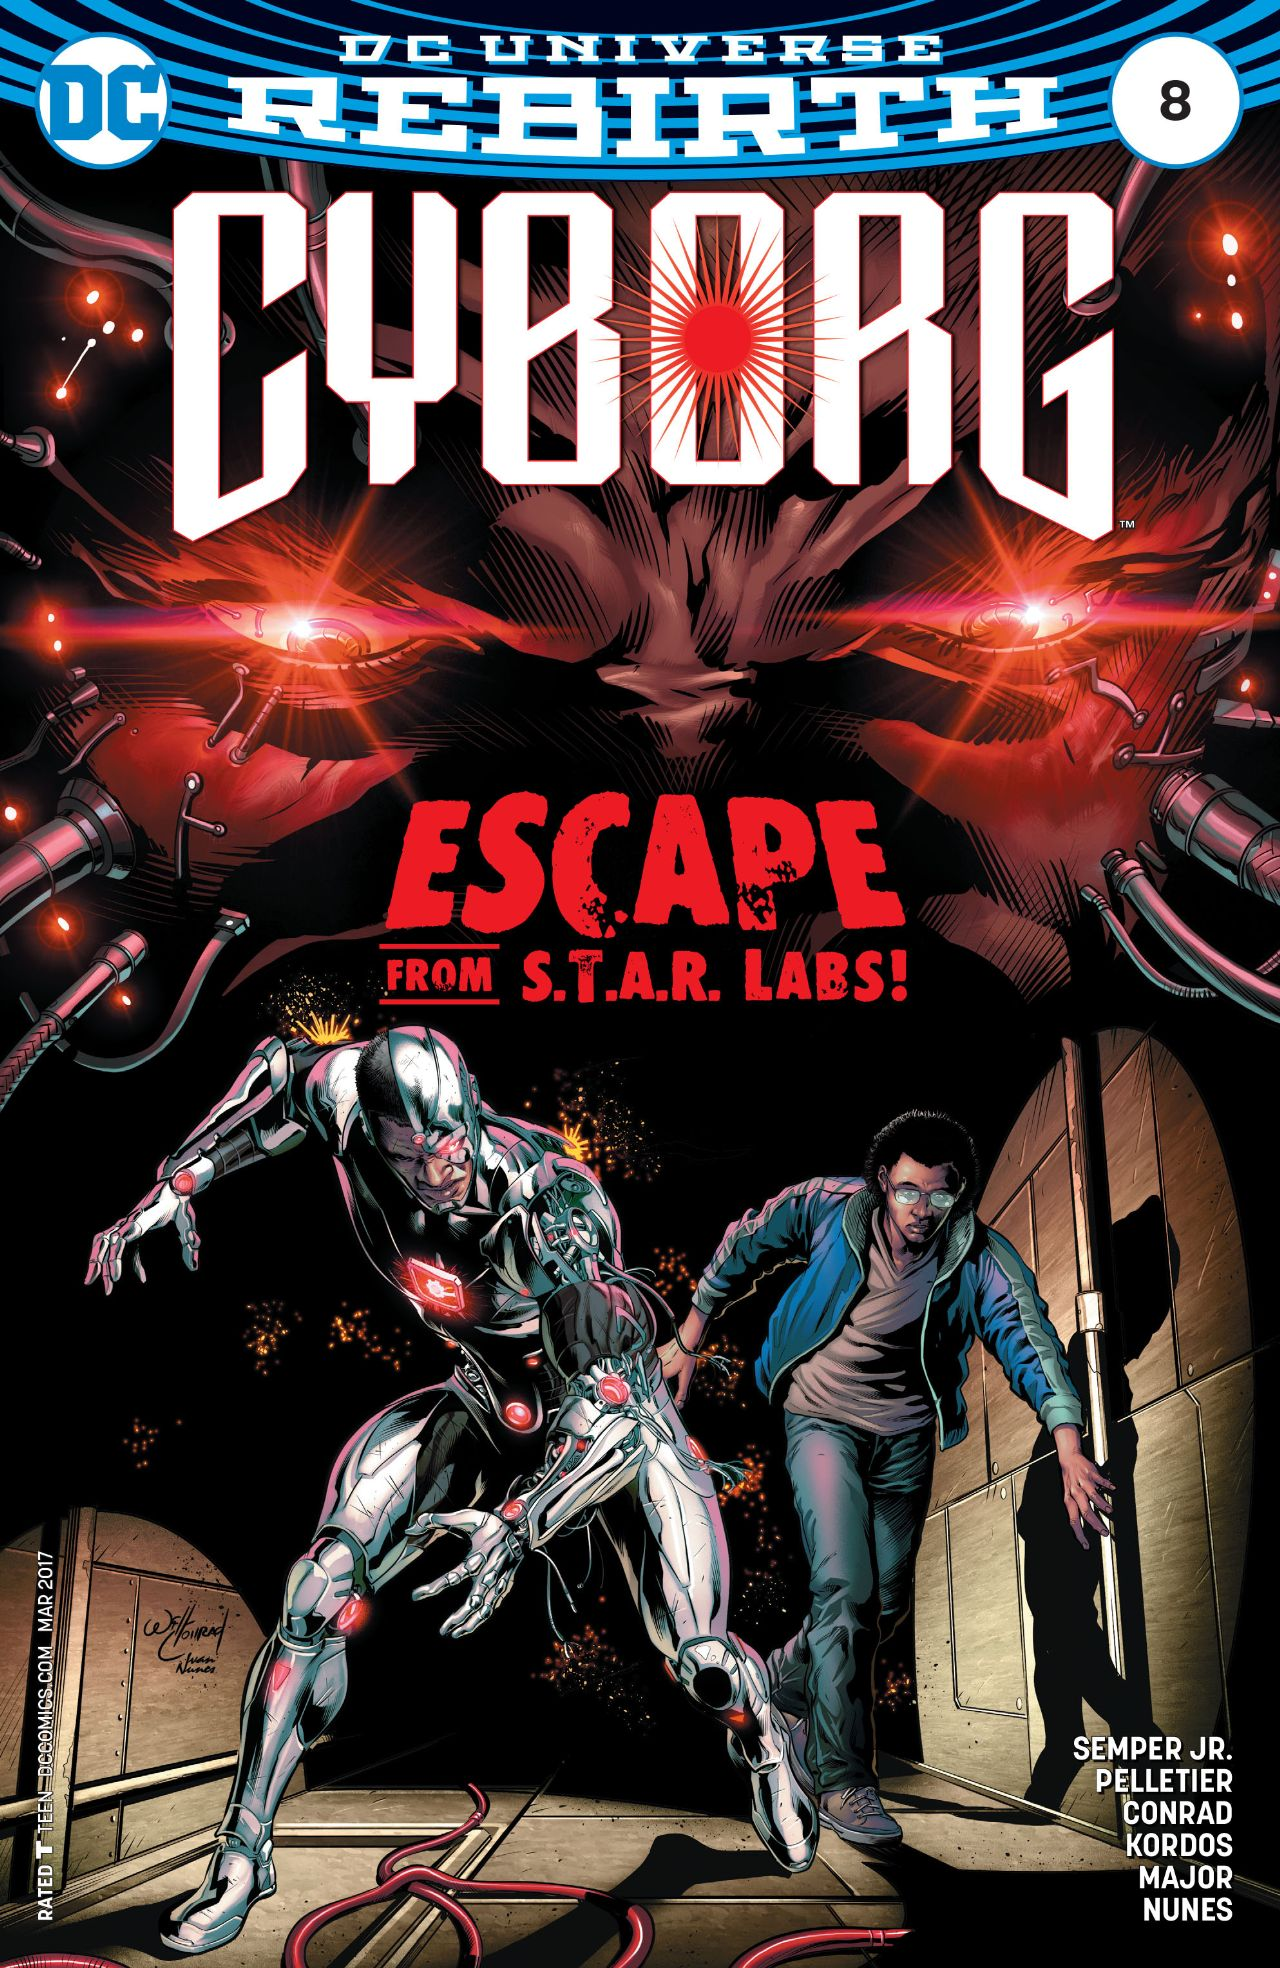 review CYBORG #8